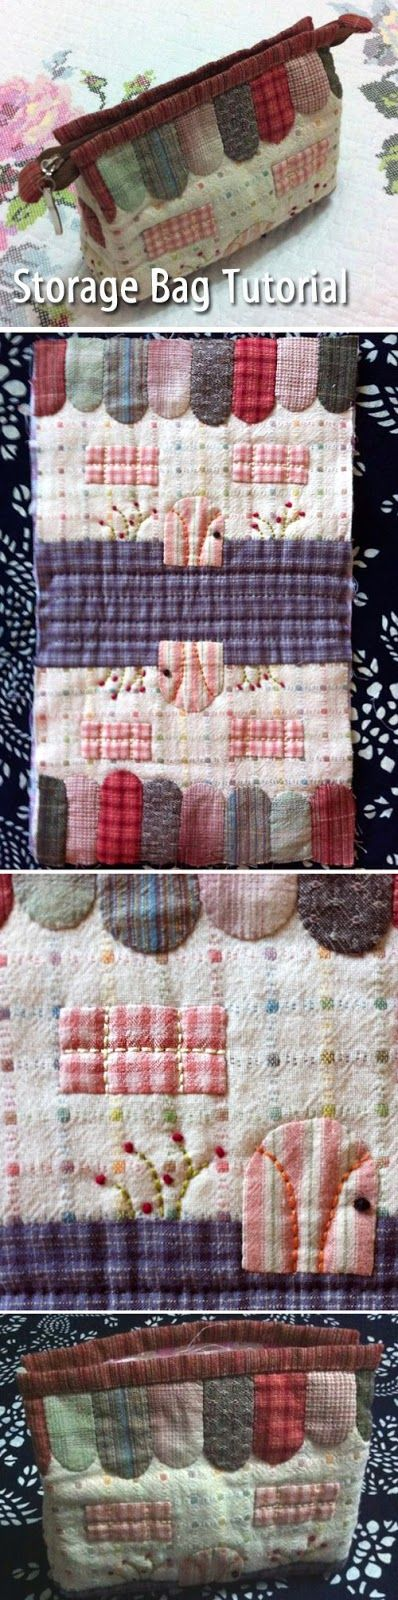 "Storage bag ""Little House"". DIY step-by-step tutorial. Patchwork http://www.handmadiya.com/2015/08/storage-bag-little-house-patchwork.html"